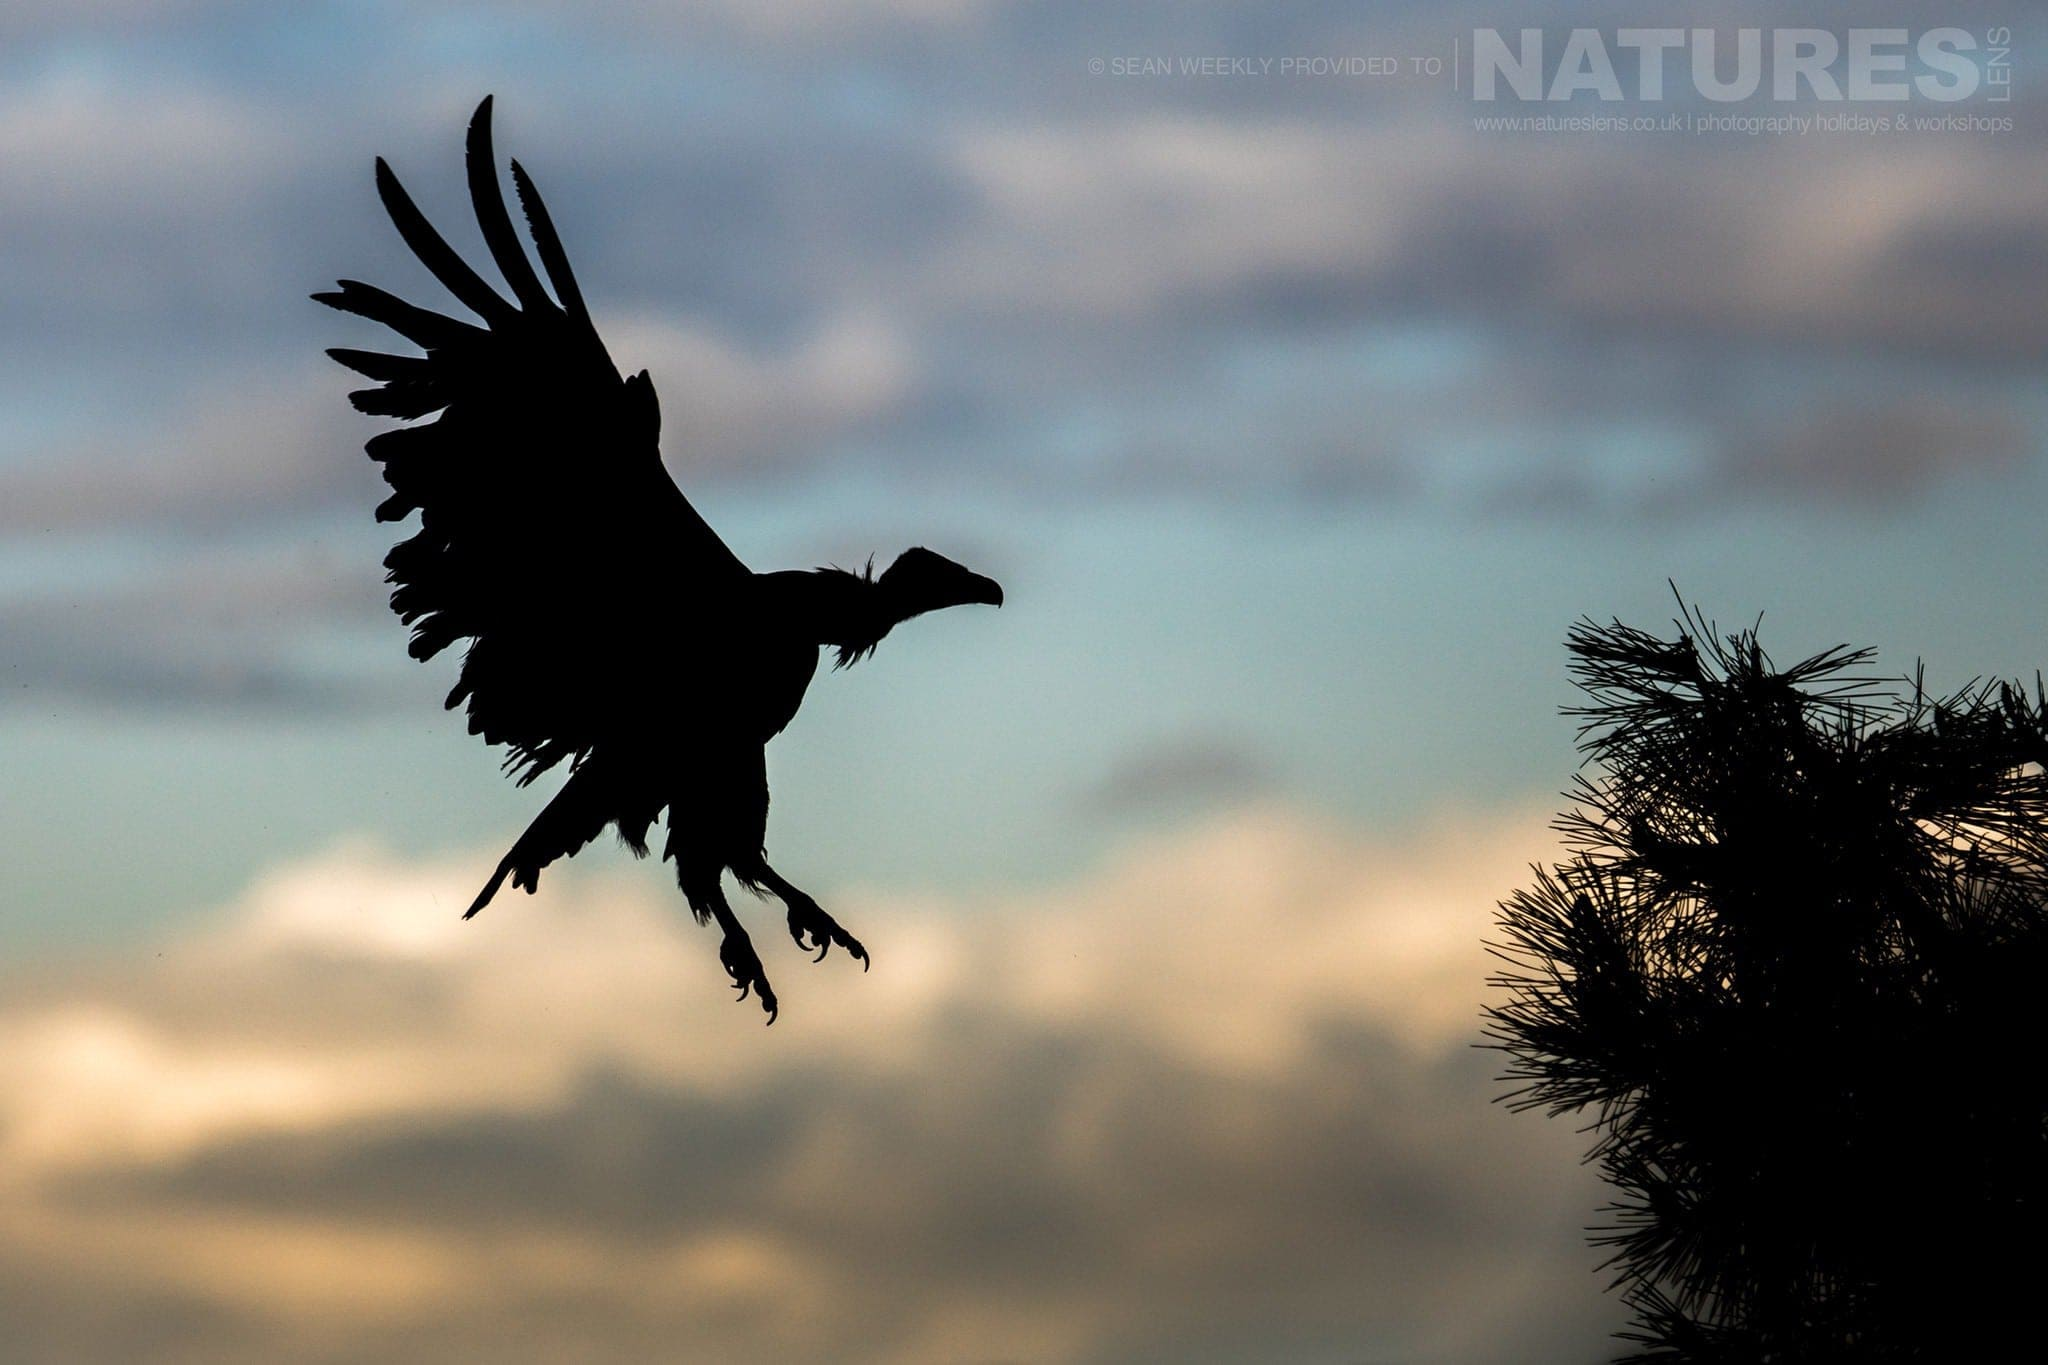 A Silhouetted Vulture Lands In A Tree In The Sierra Morena Region Of Spain   Image Captured During The NaturesLens Golden Eagles & Raptors Of Spain Photography Holiday